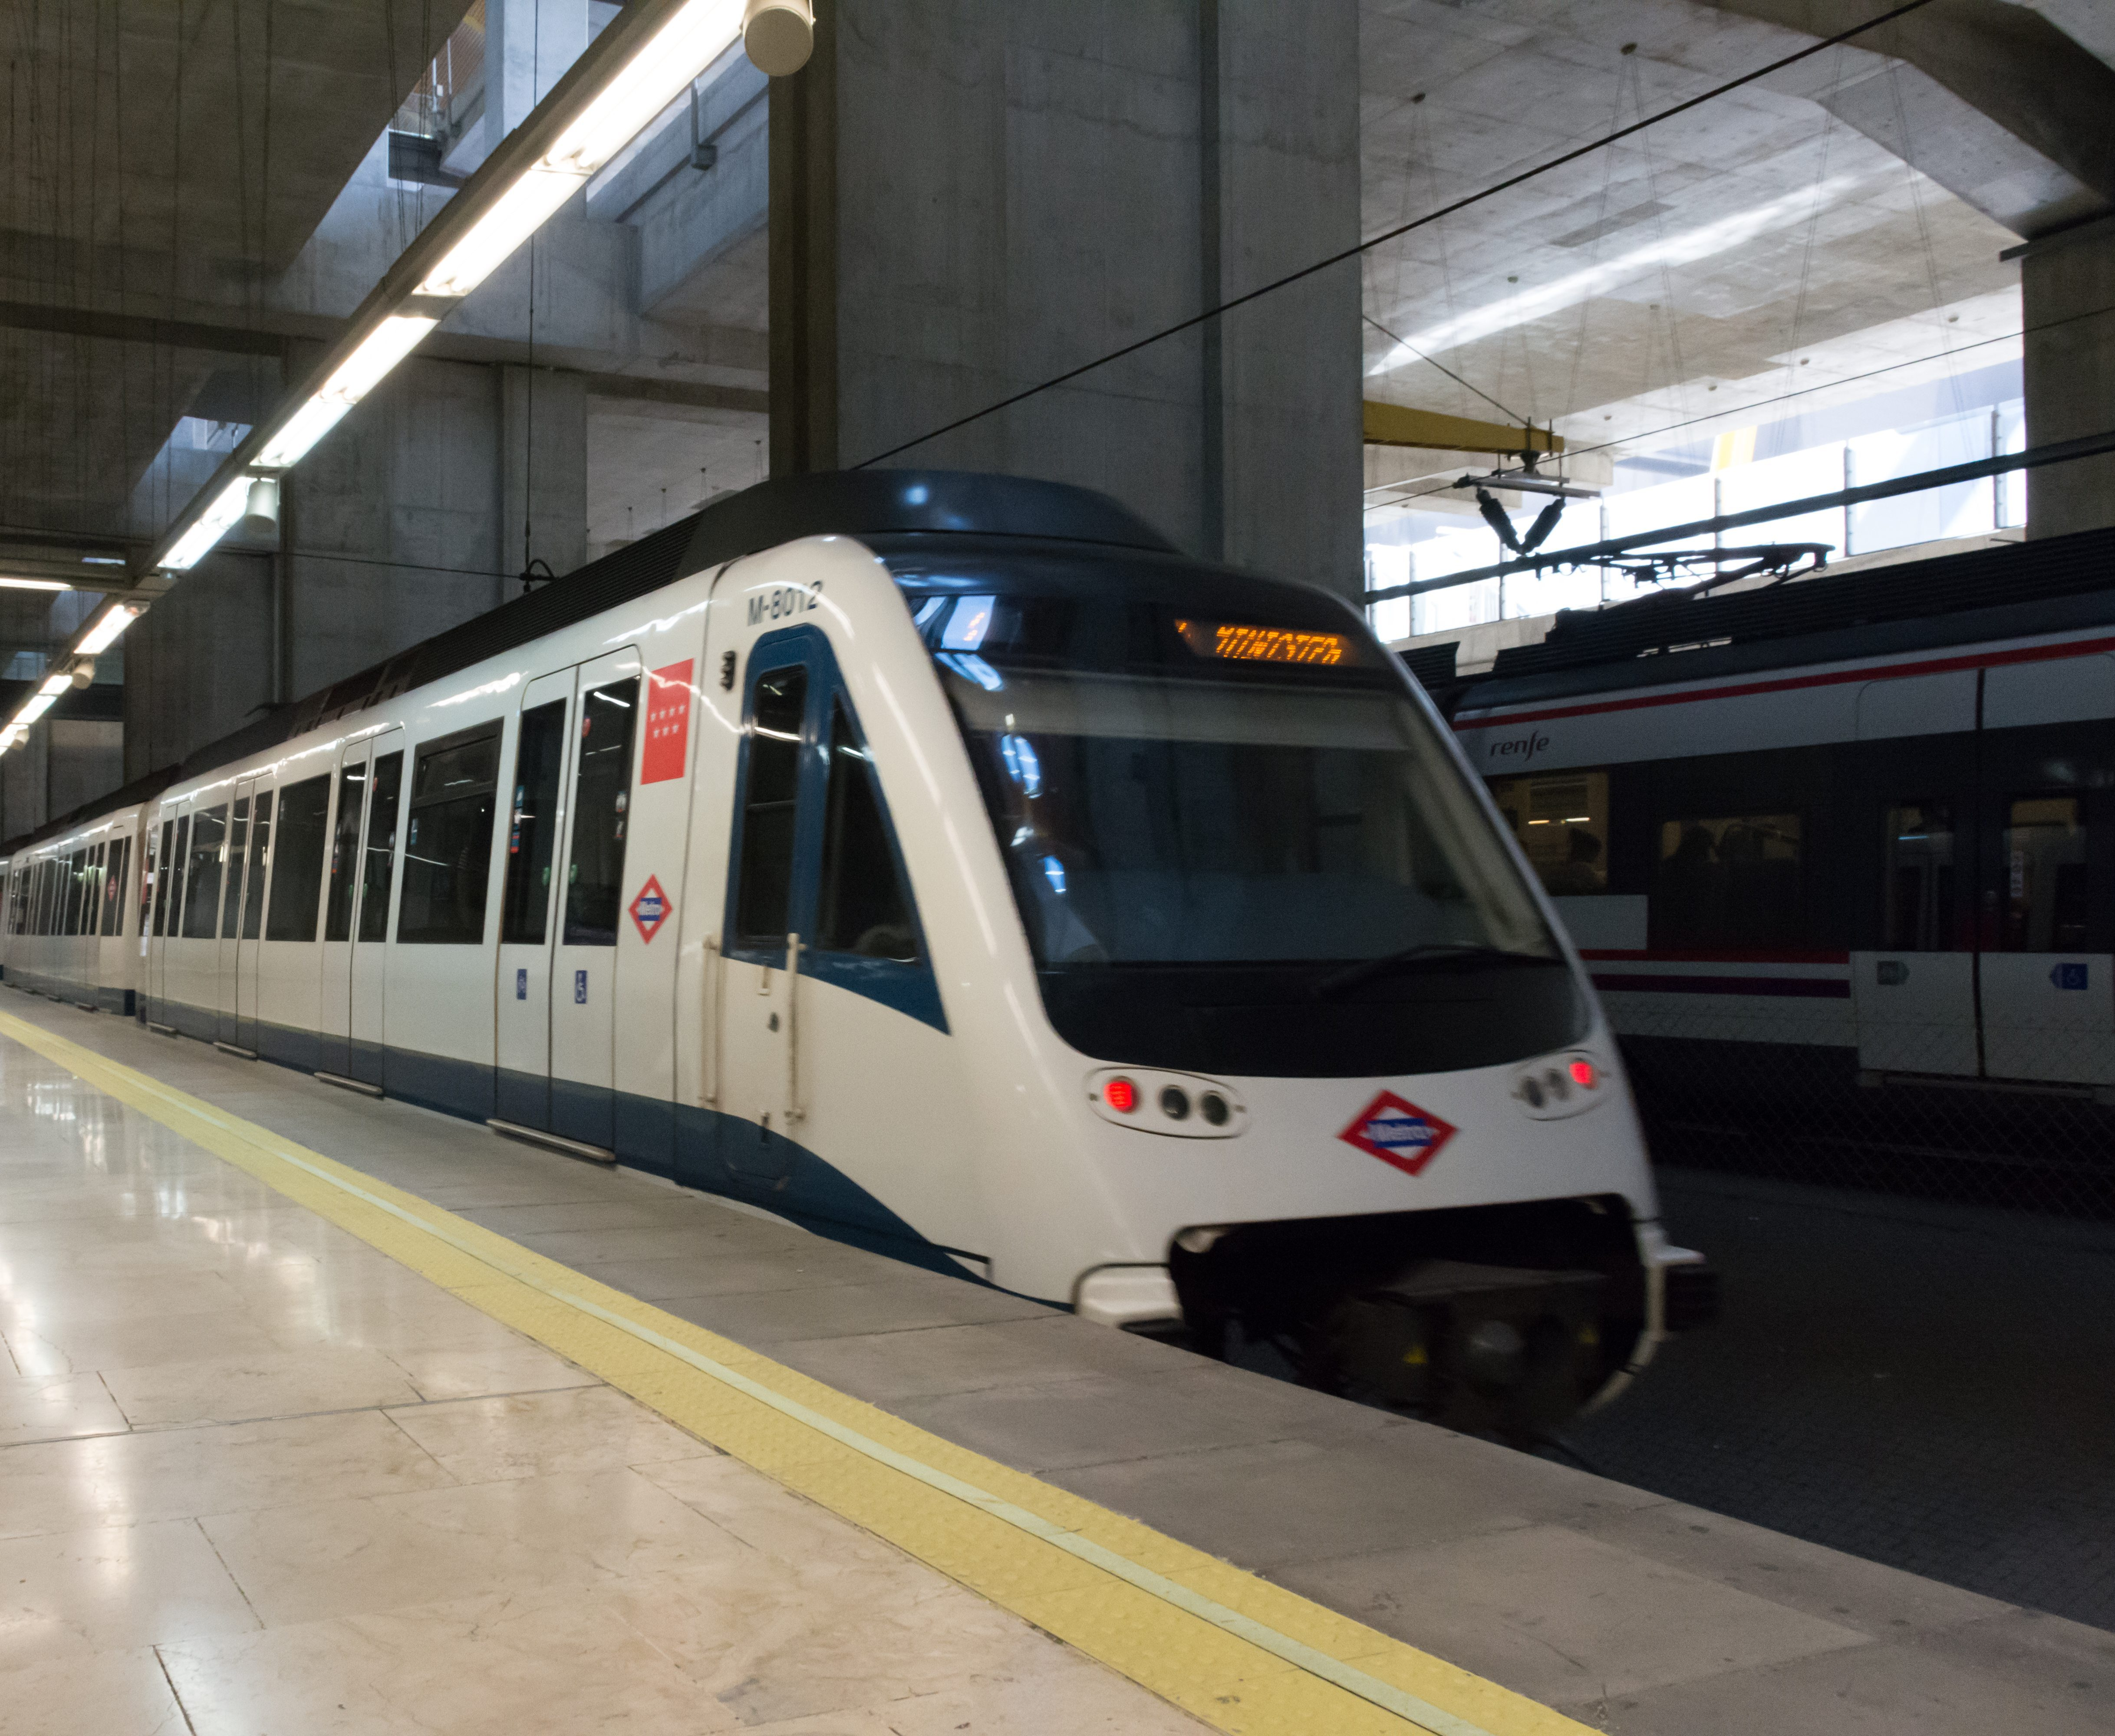 Madrid airport metro train arriving at the airport